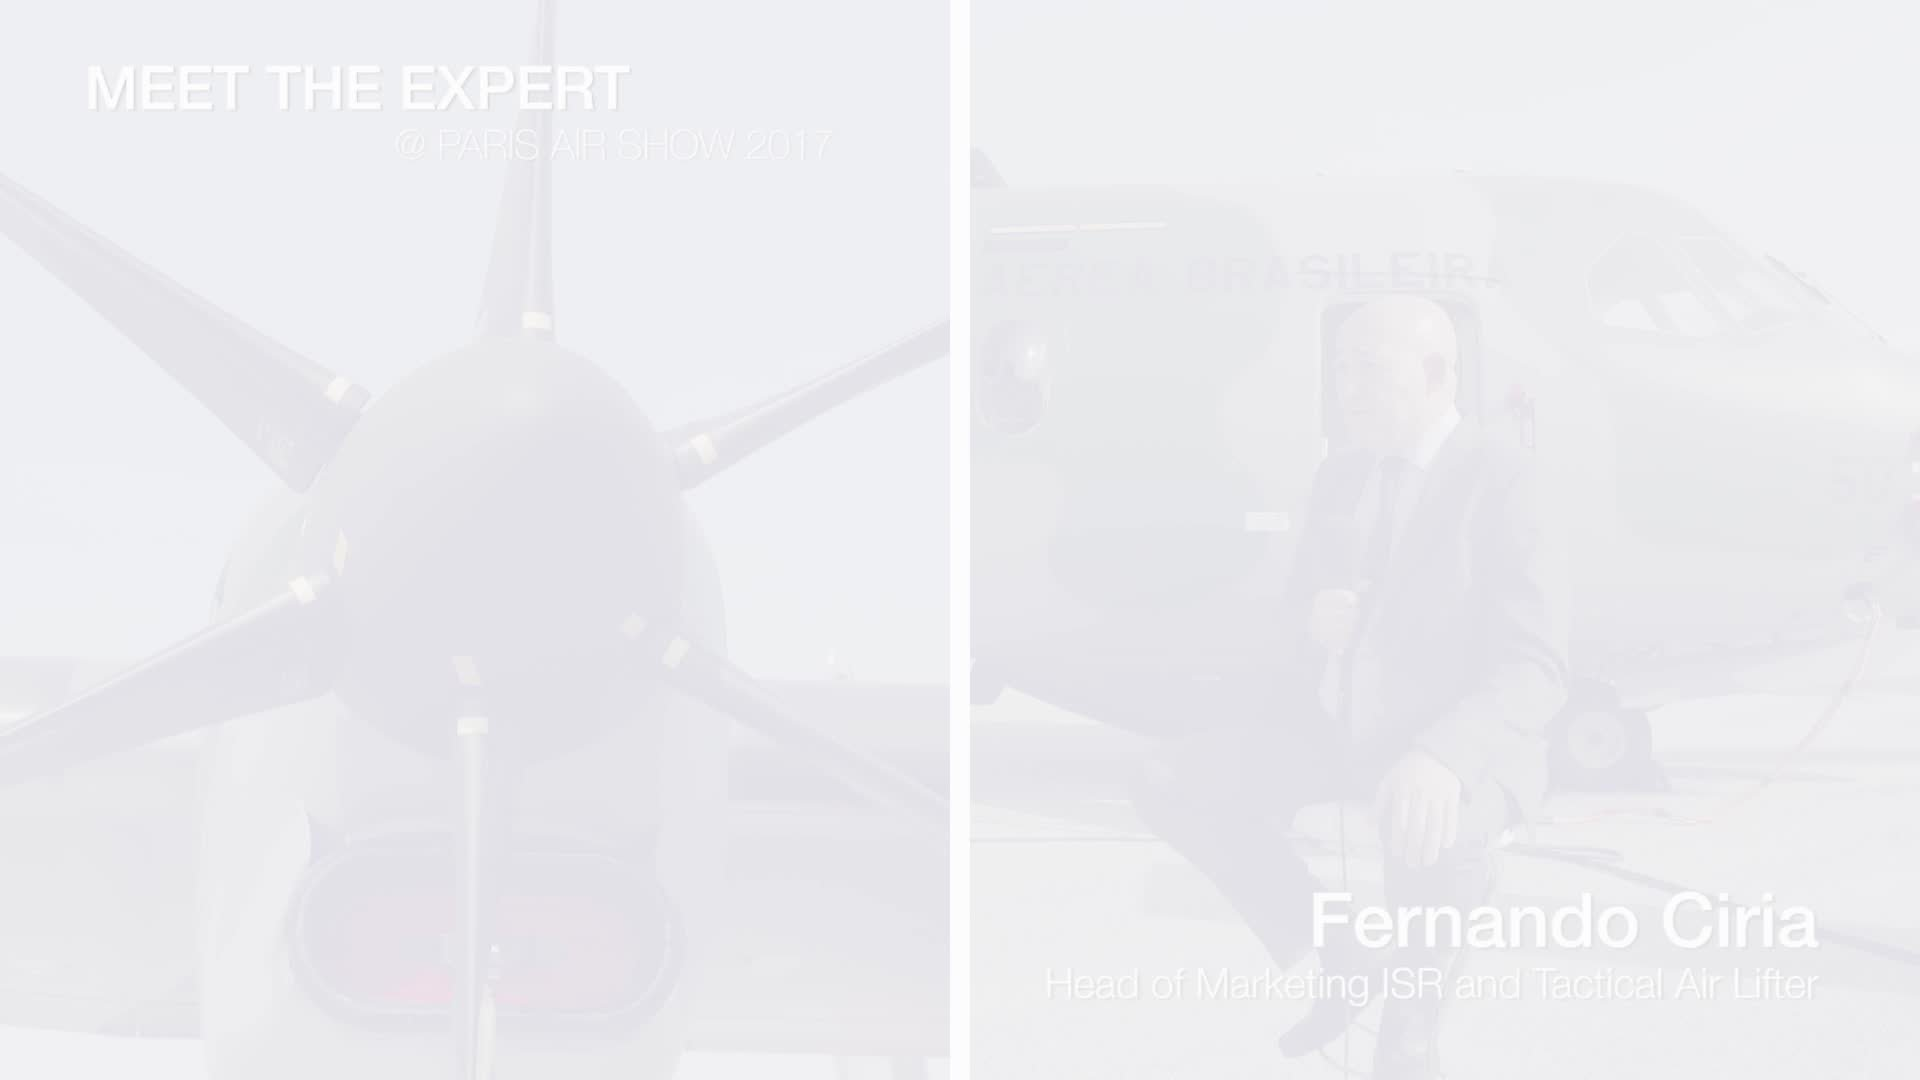 Meet the Expert: Fernando Ciria, Head of Marketing  ISR and Tactical Air Lifter - WEB